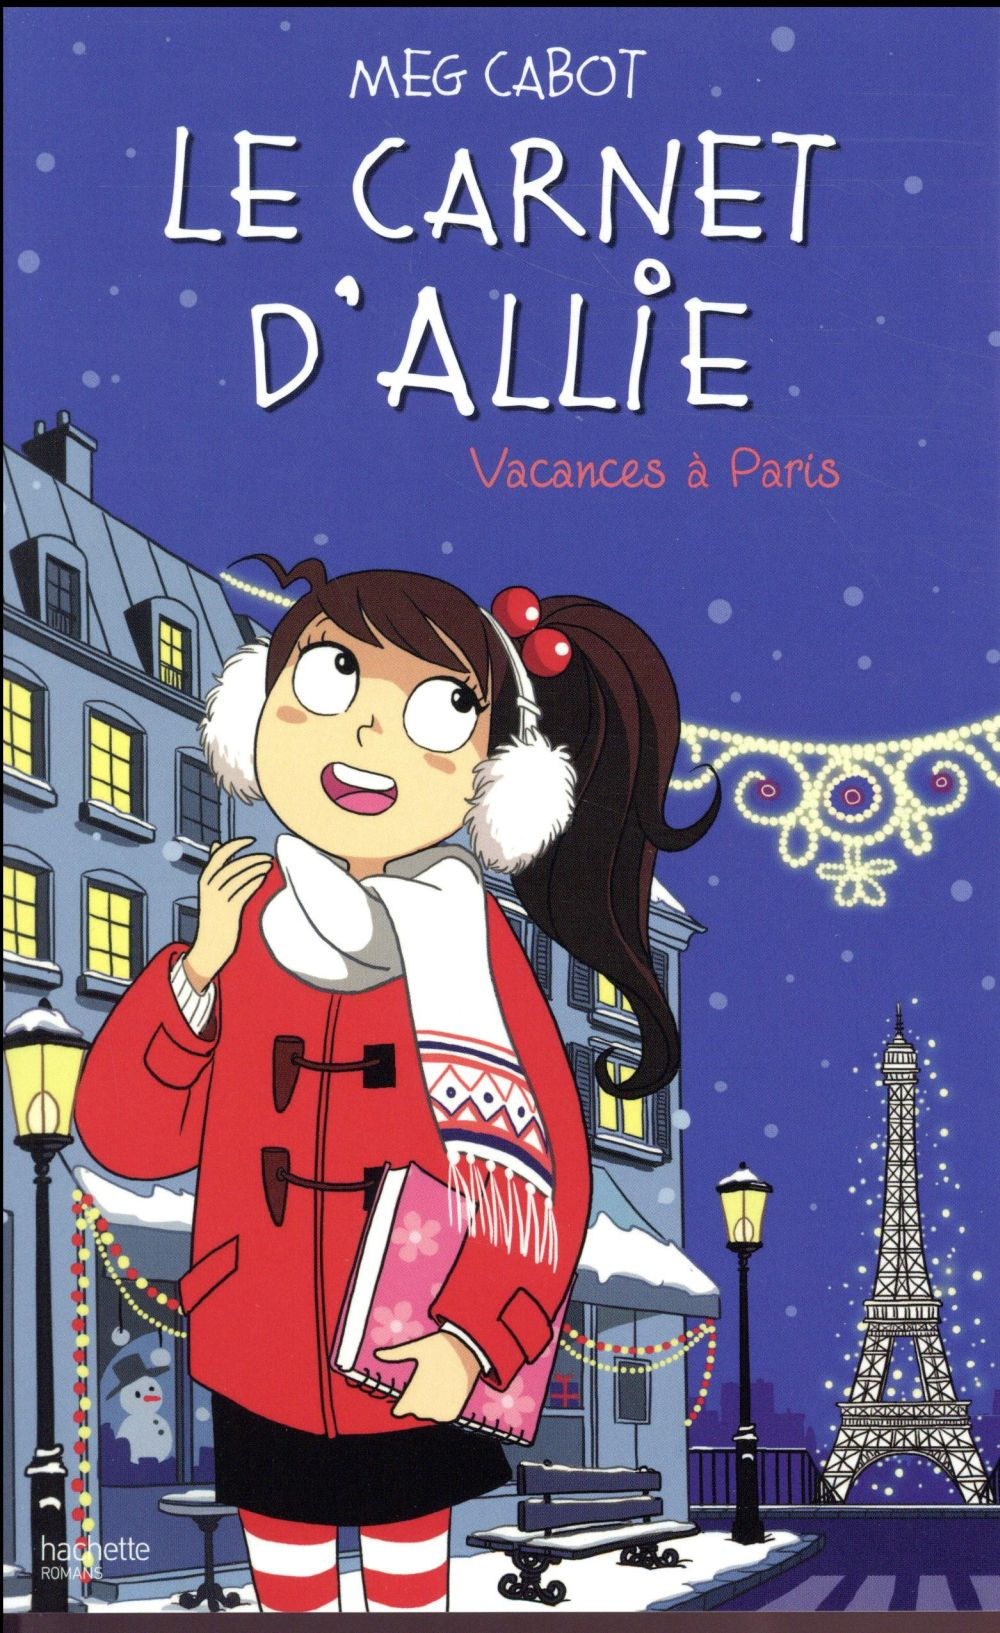 LE CARNET D'ALLIE - VACANCES A PARIS